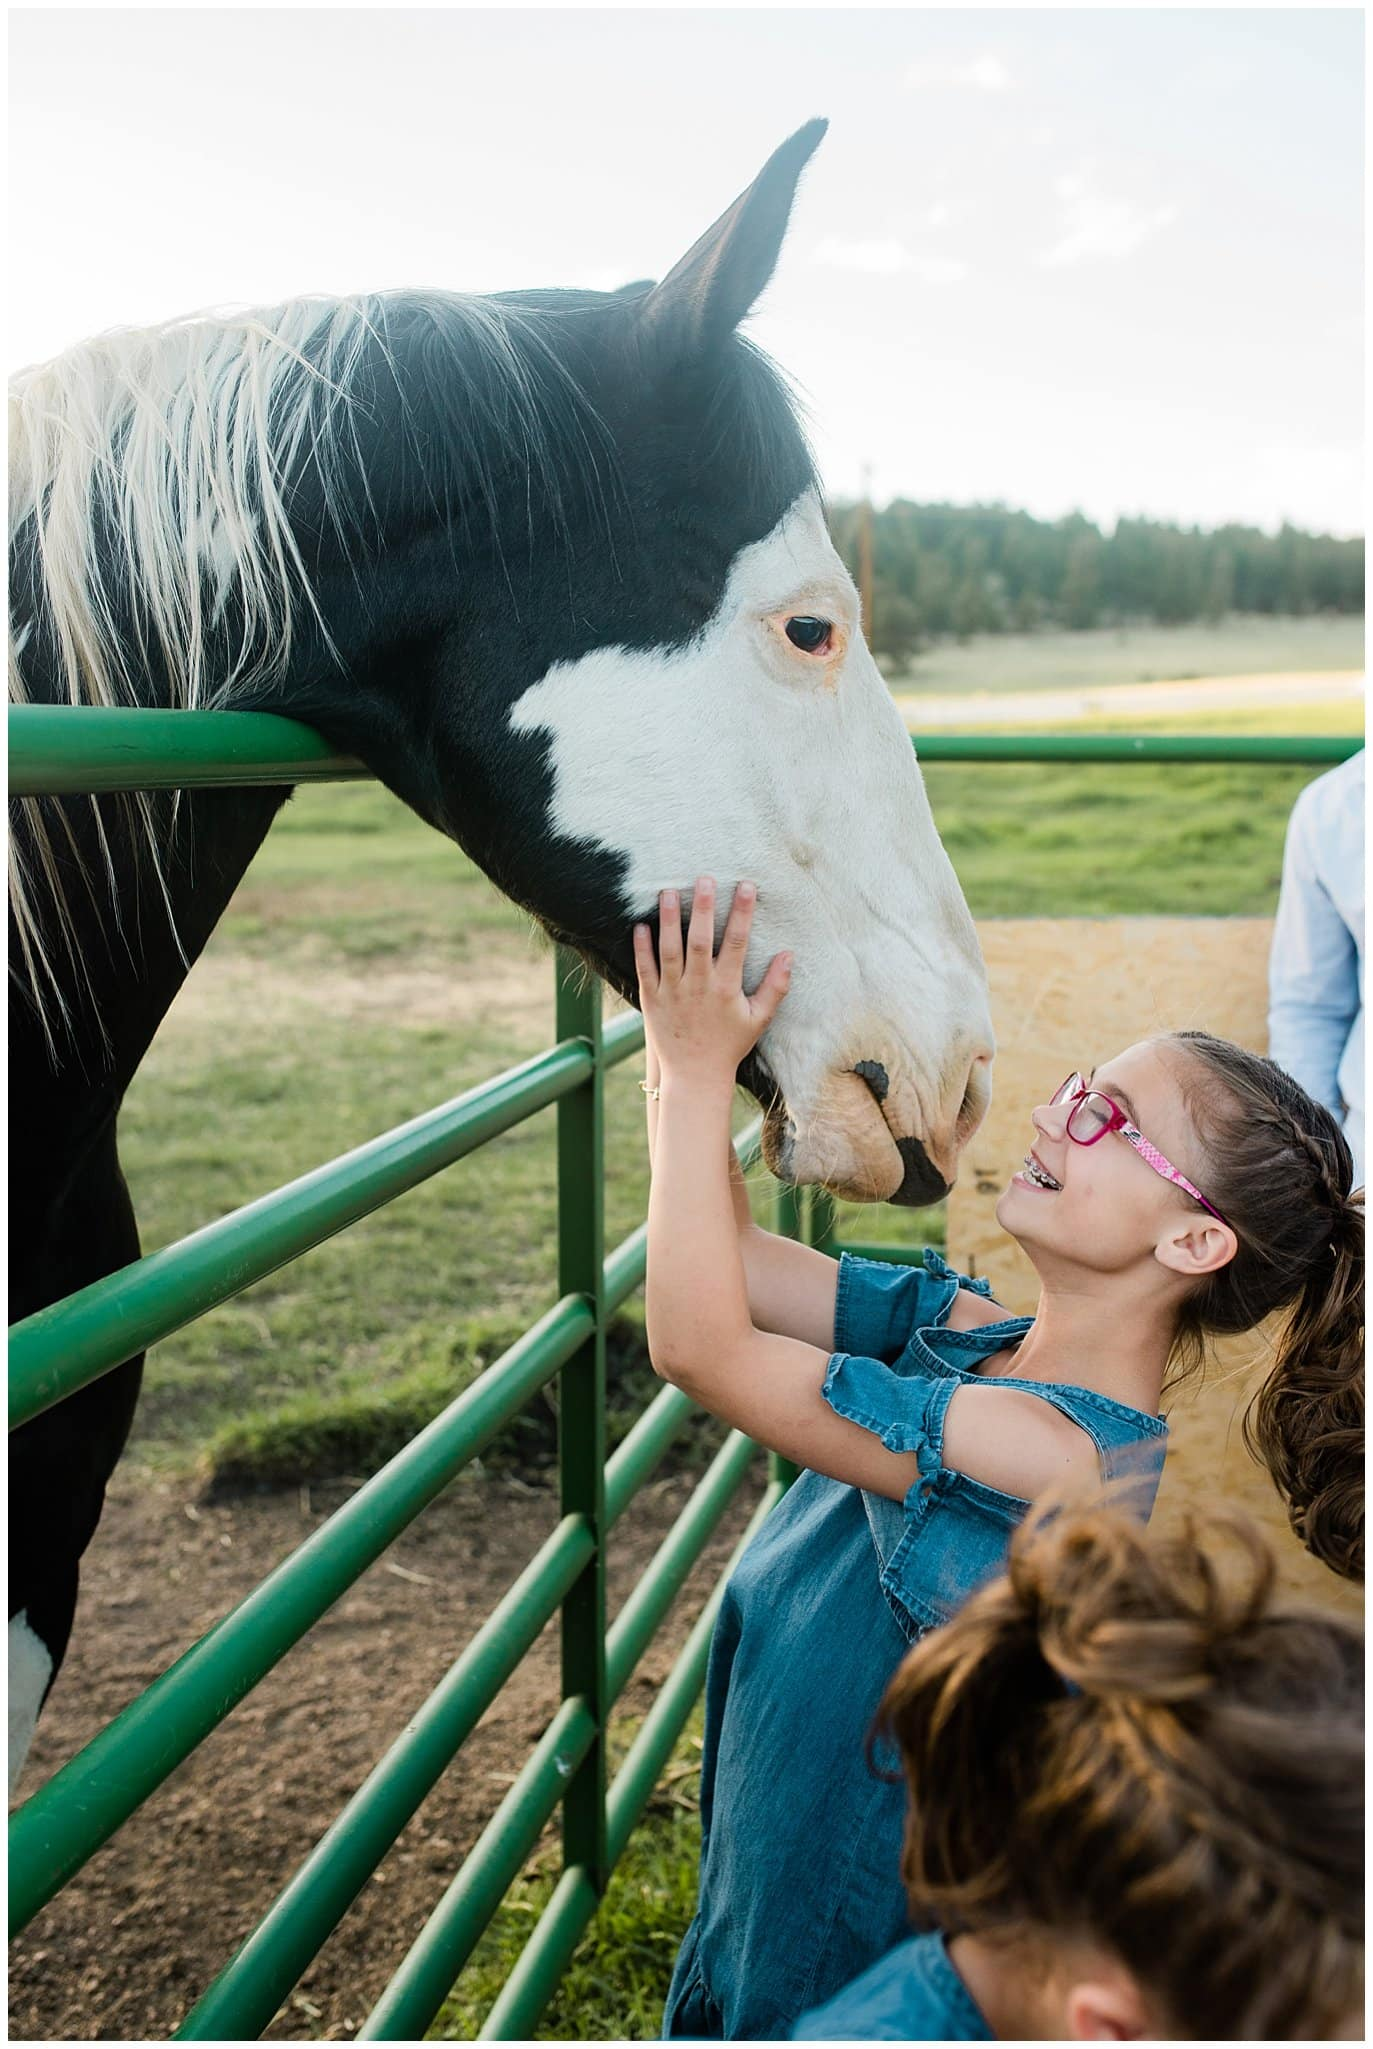 Flower Girl with Horses at Deer Creek Valley Ranch wedding by Colorado Wedding Photographer Jennie Crate Photographer